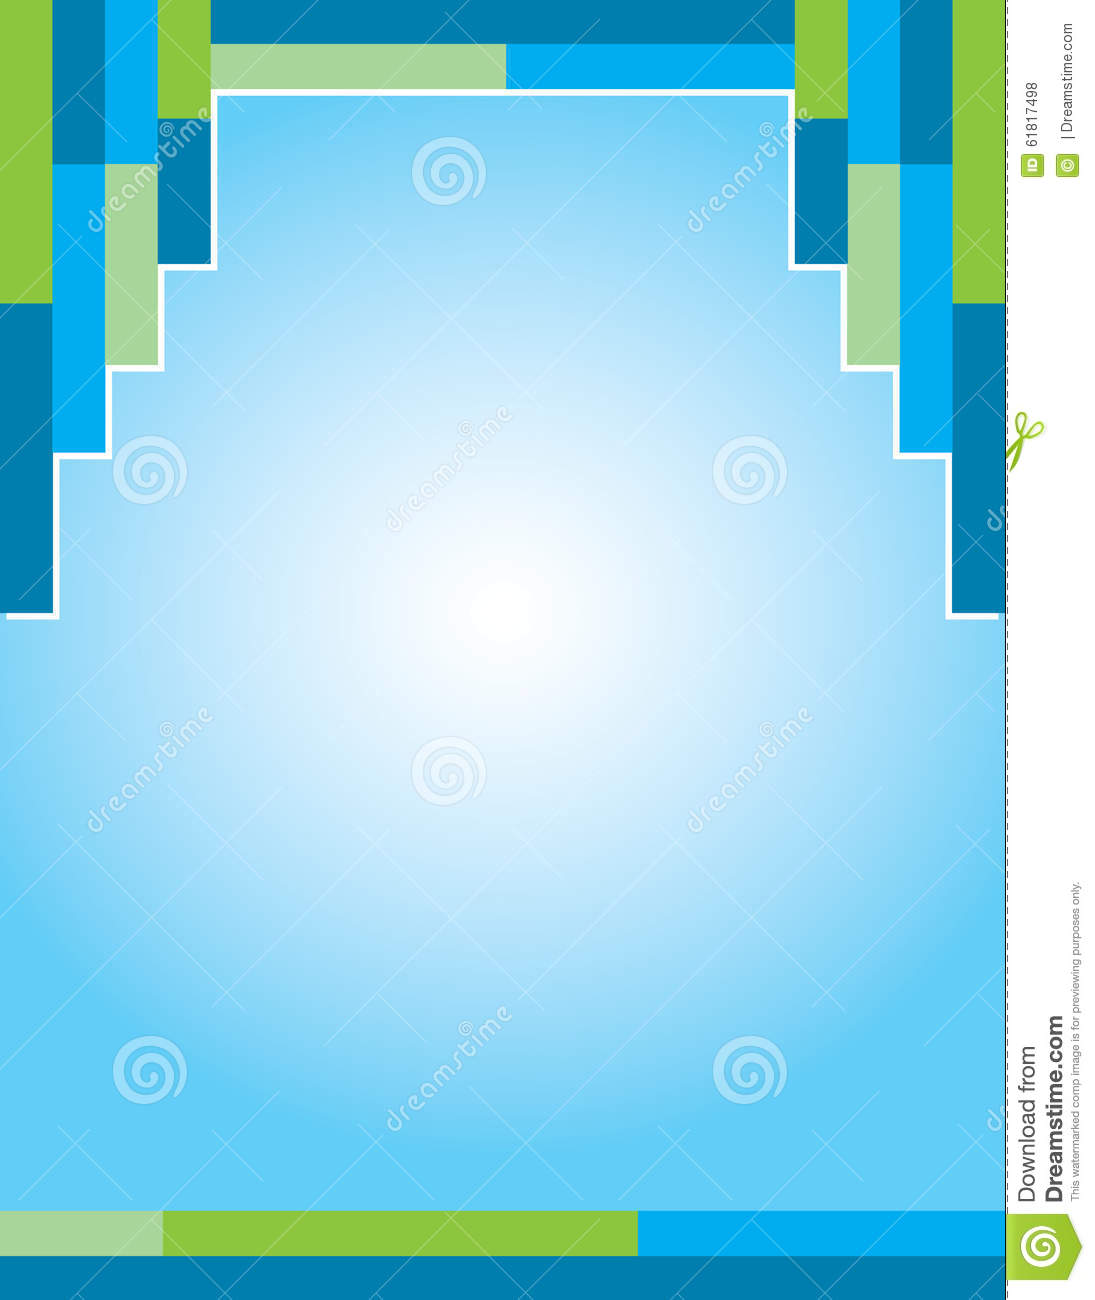 Green Blue Brochure Background Stock Illustration Image